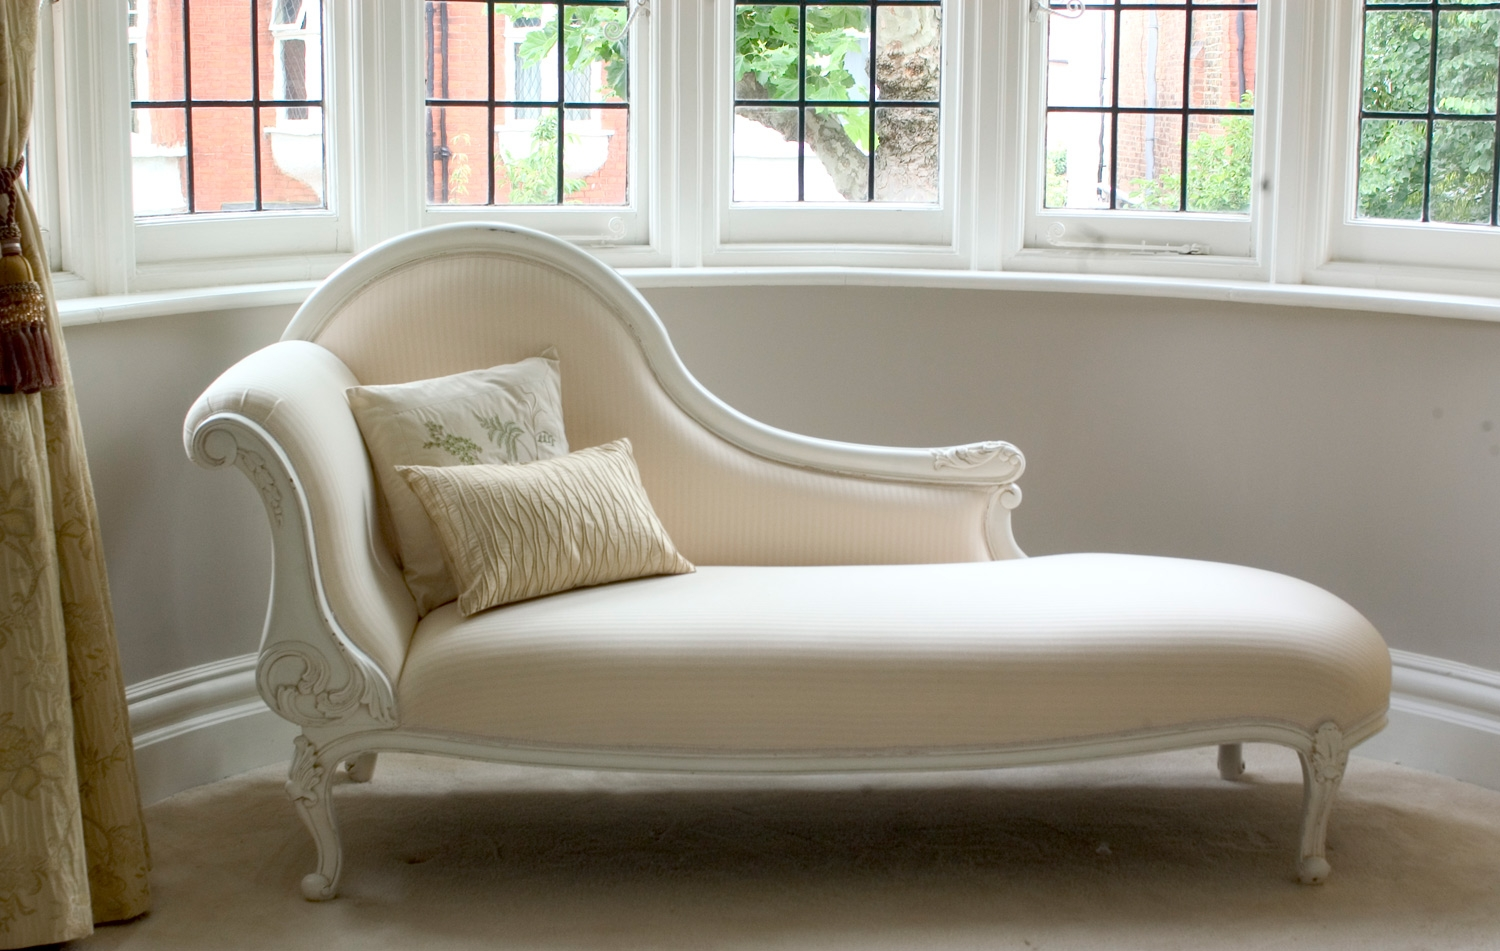 Elegance of living chaise longue sofa designs for Chaise longue lounge